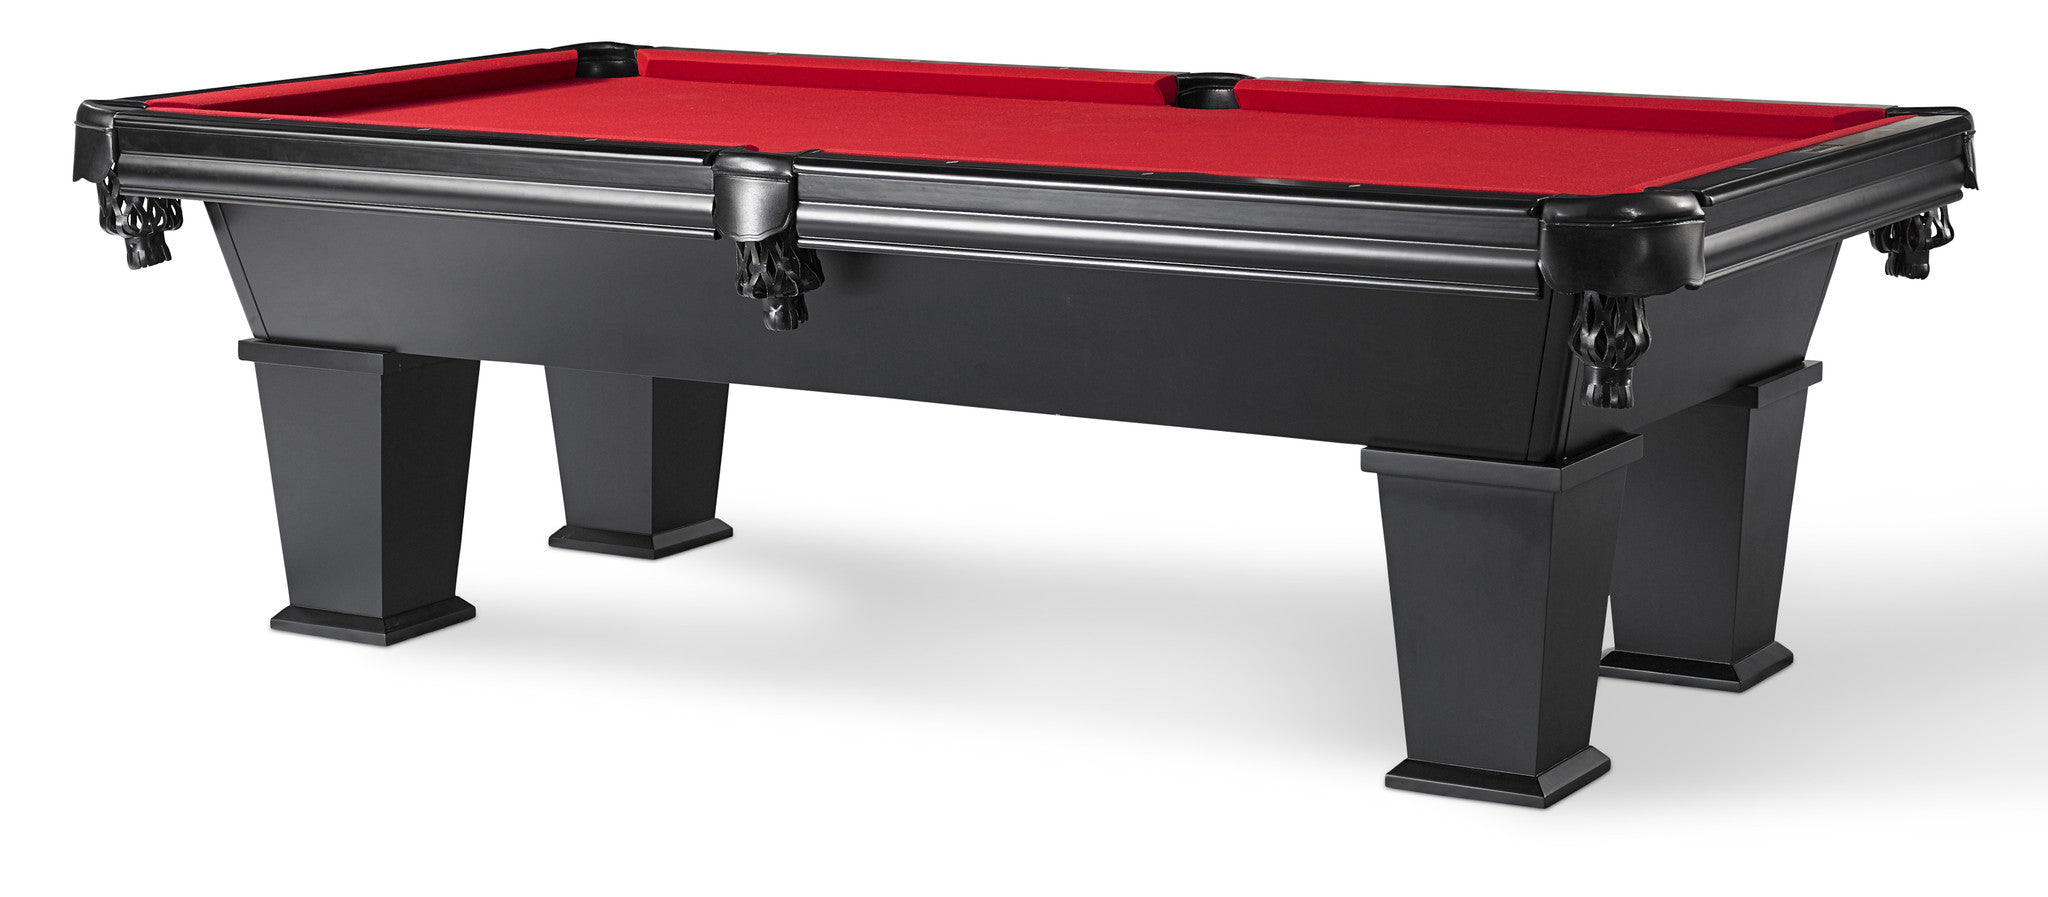 cheap asp for sale catalogue cues custom index pool table parisian mr tables billiard accessories